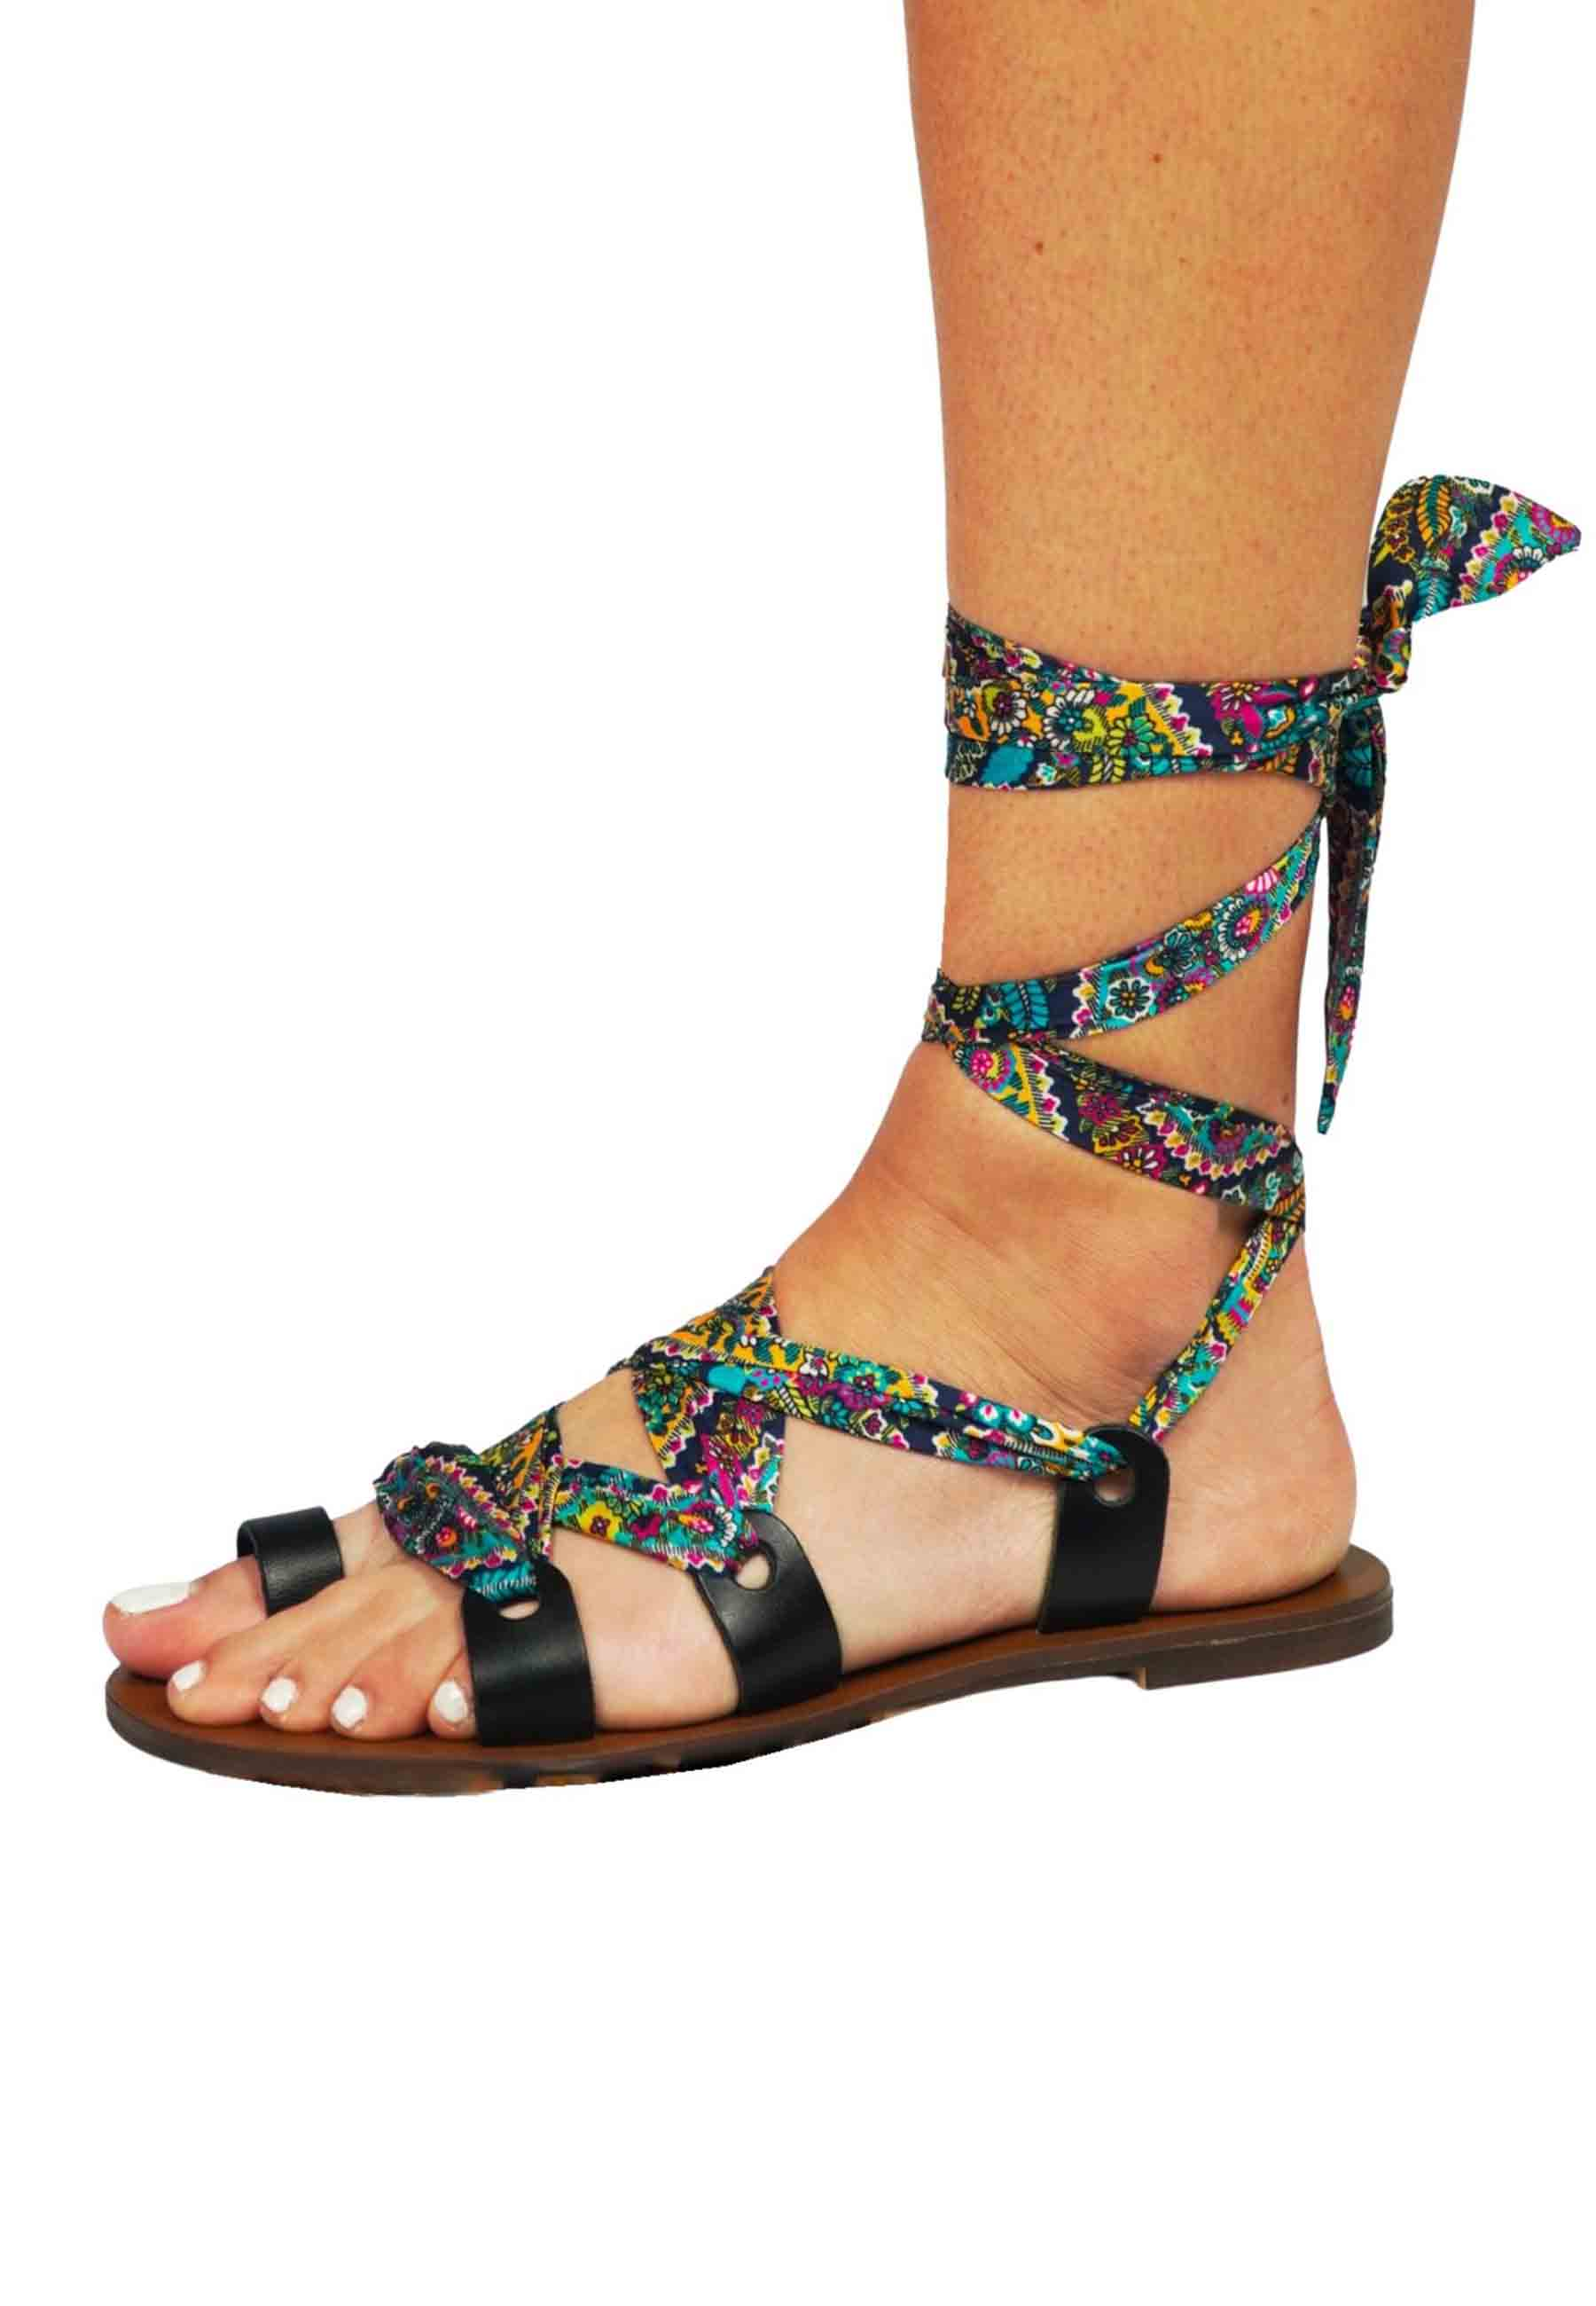 Women's Shoes Flat Thong Sandals in Black Leather with Patterned Fabric Gipsy Rose   Sandals   BANDANAB03